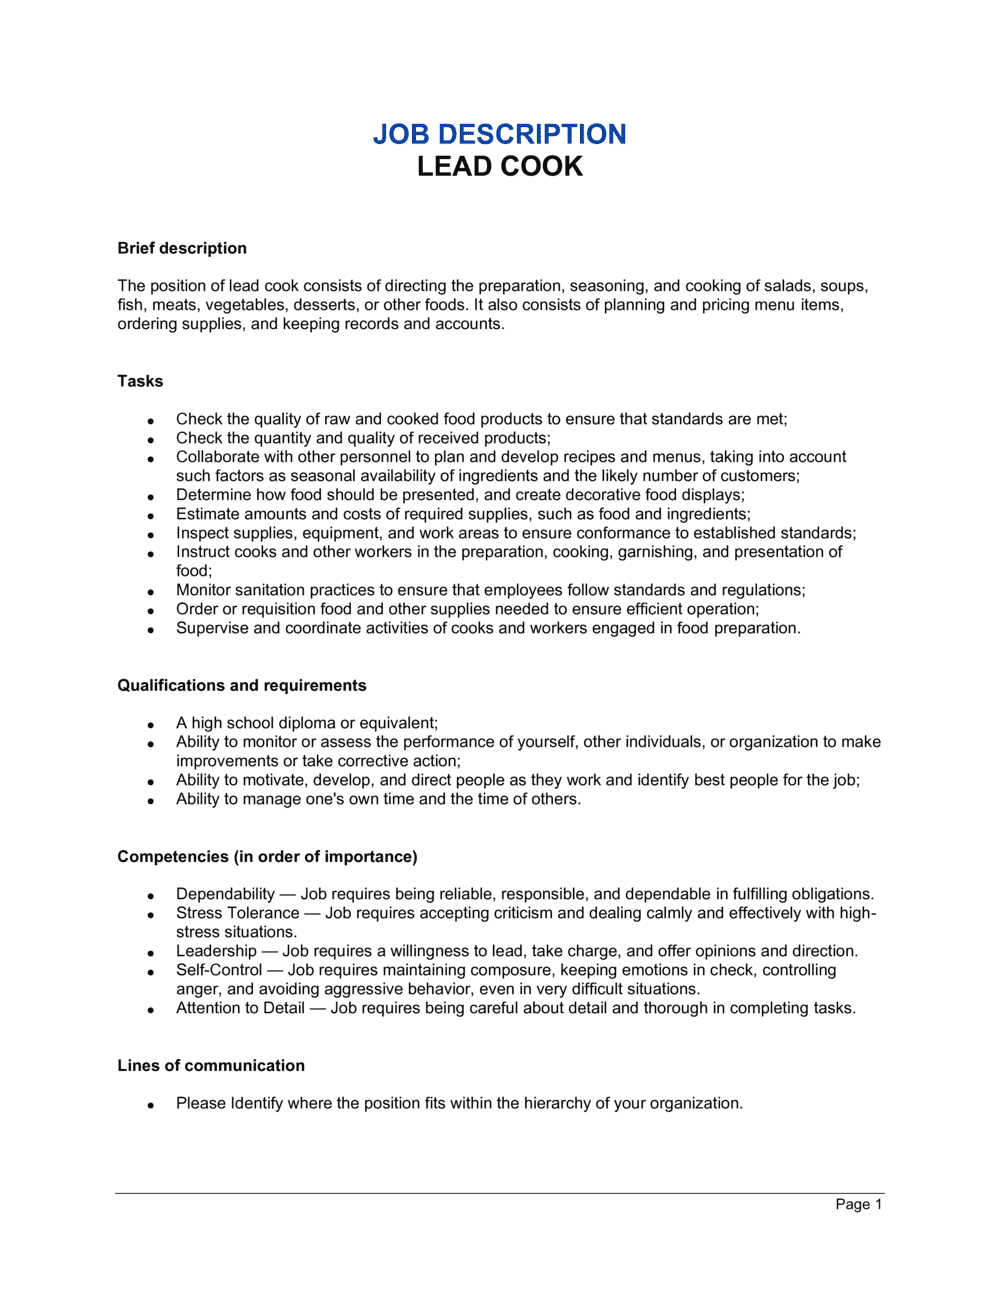 Business-in-a-Box's Lead Cook Job Description Template